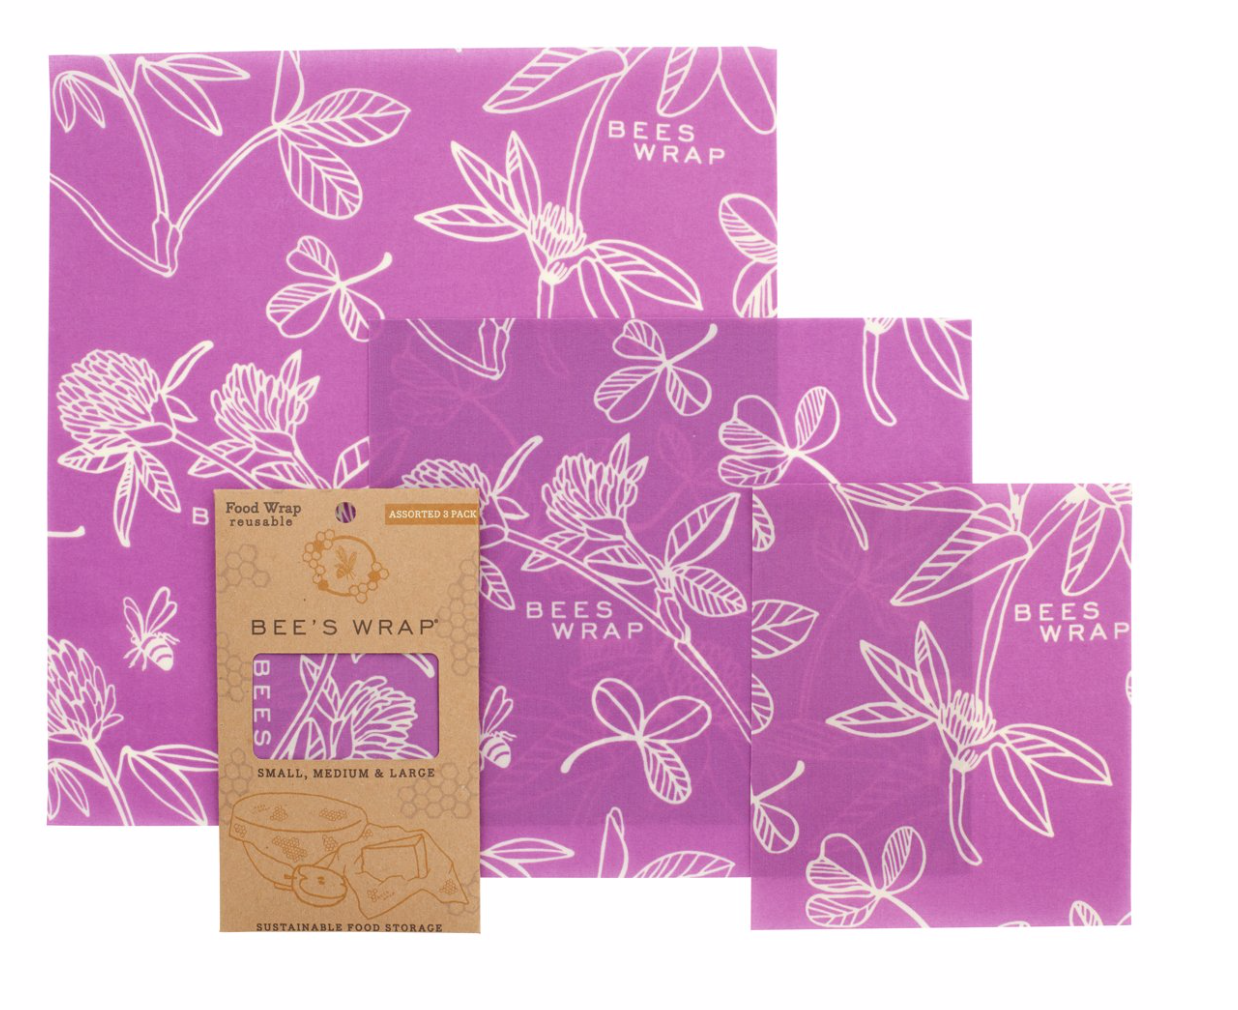 Bee's Wrap - Clover Print - Set of 3 sizes (S, M, L)